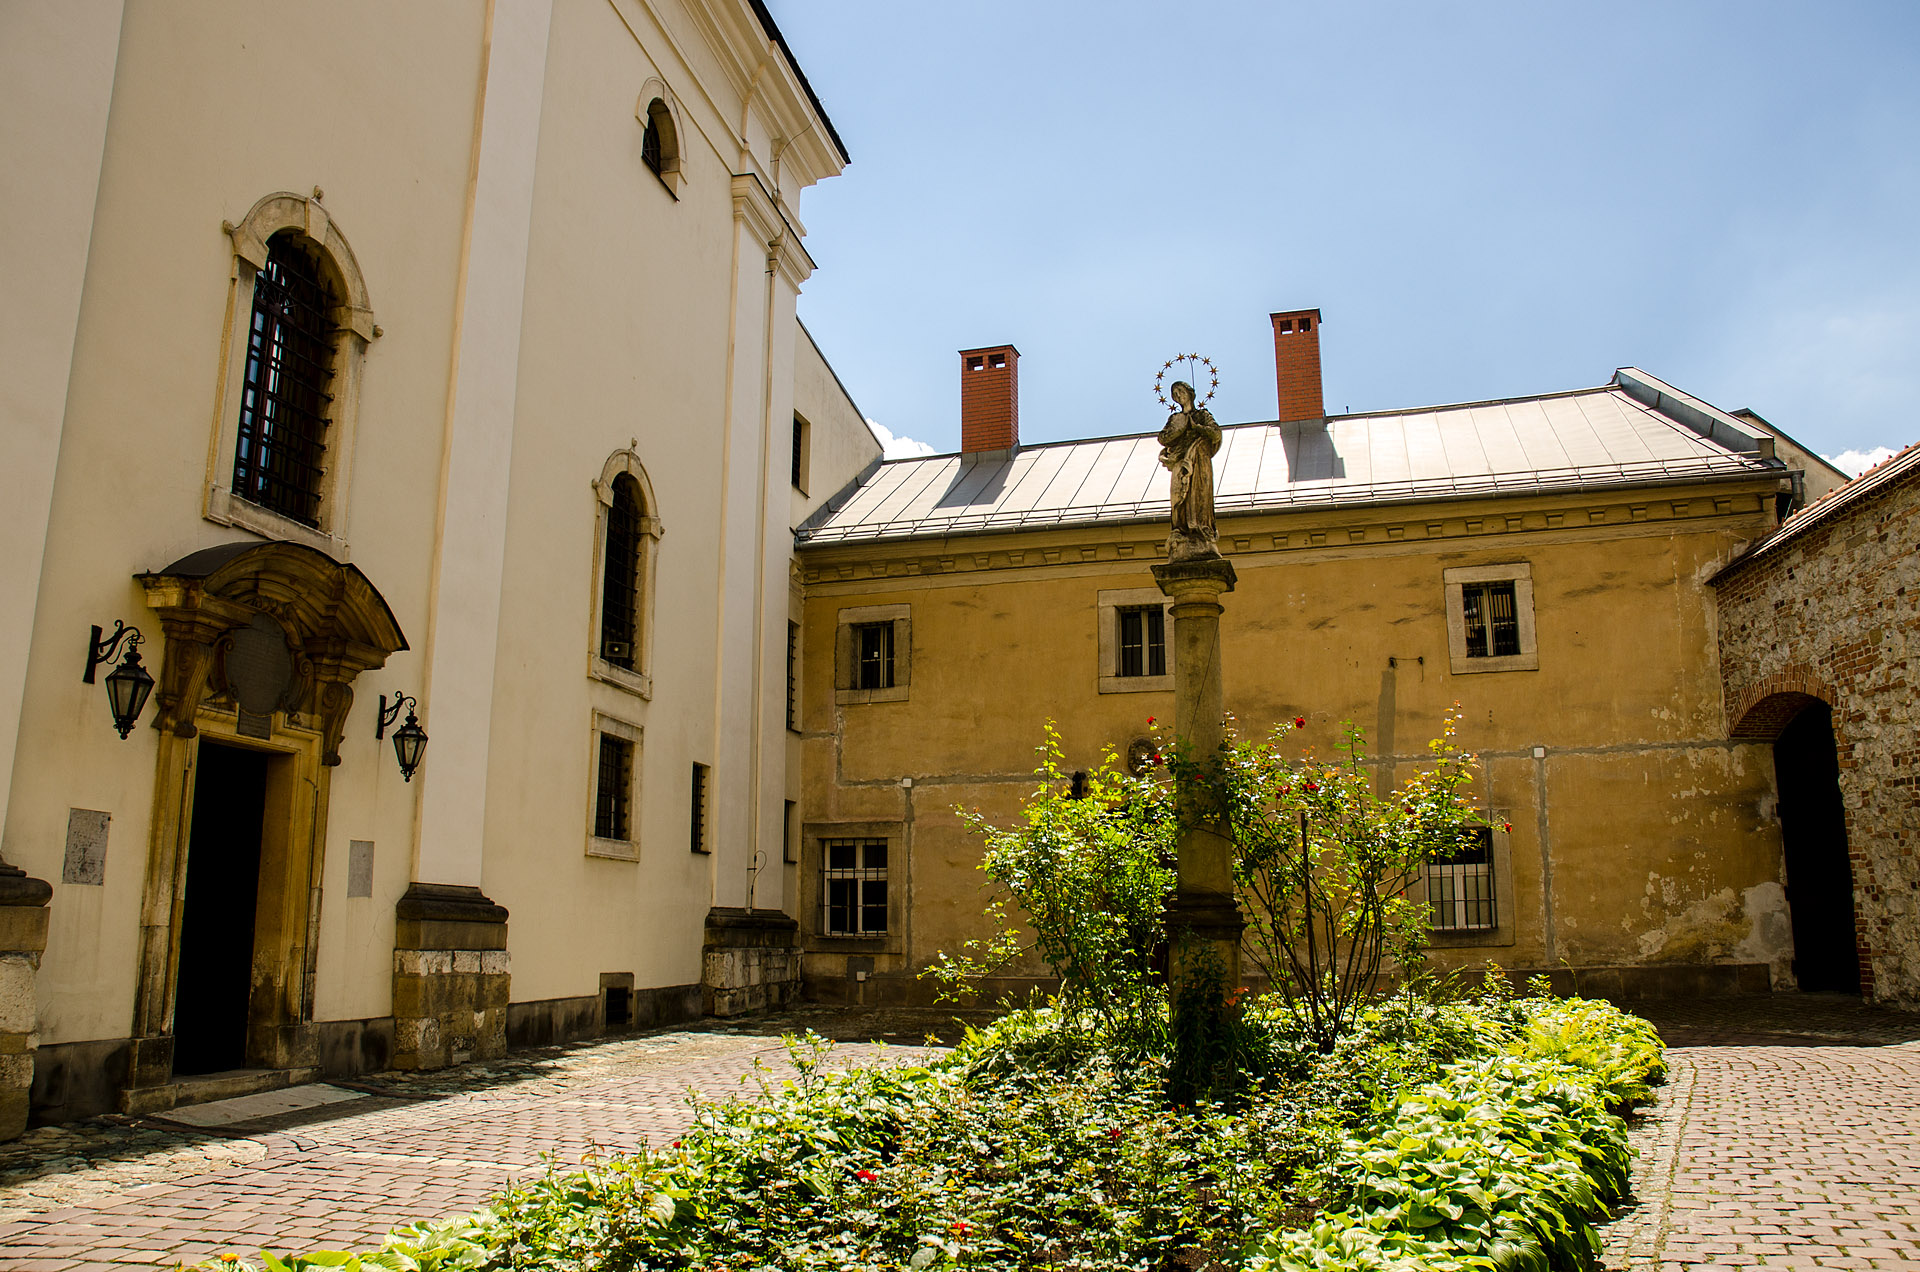 Dominican courtyard (Nuns of the Order of Preachers)